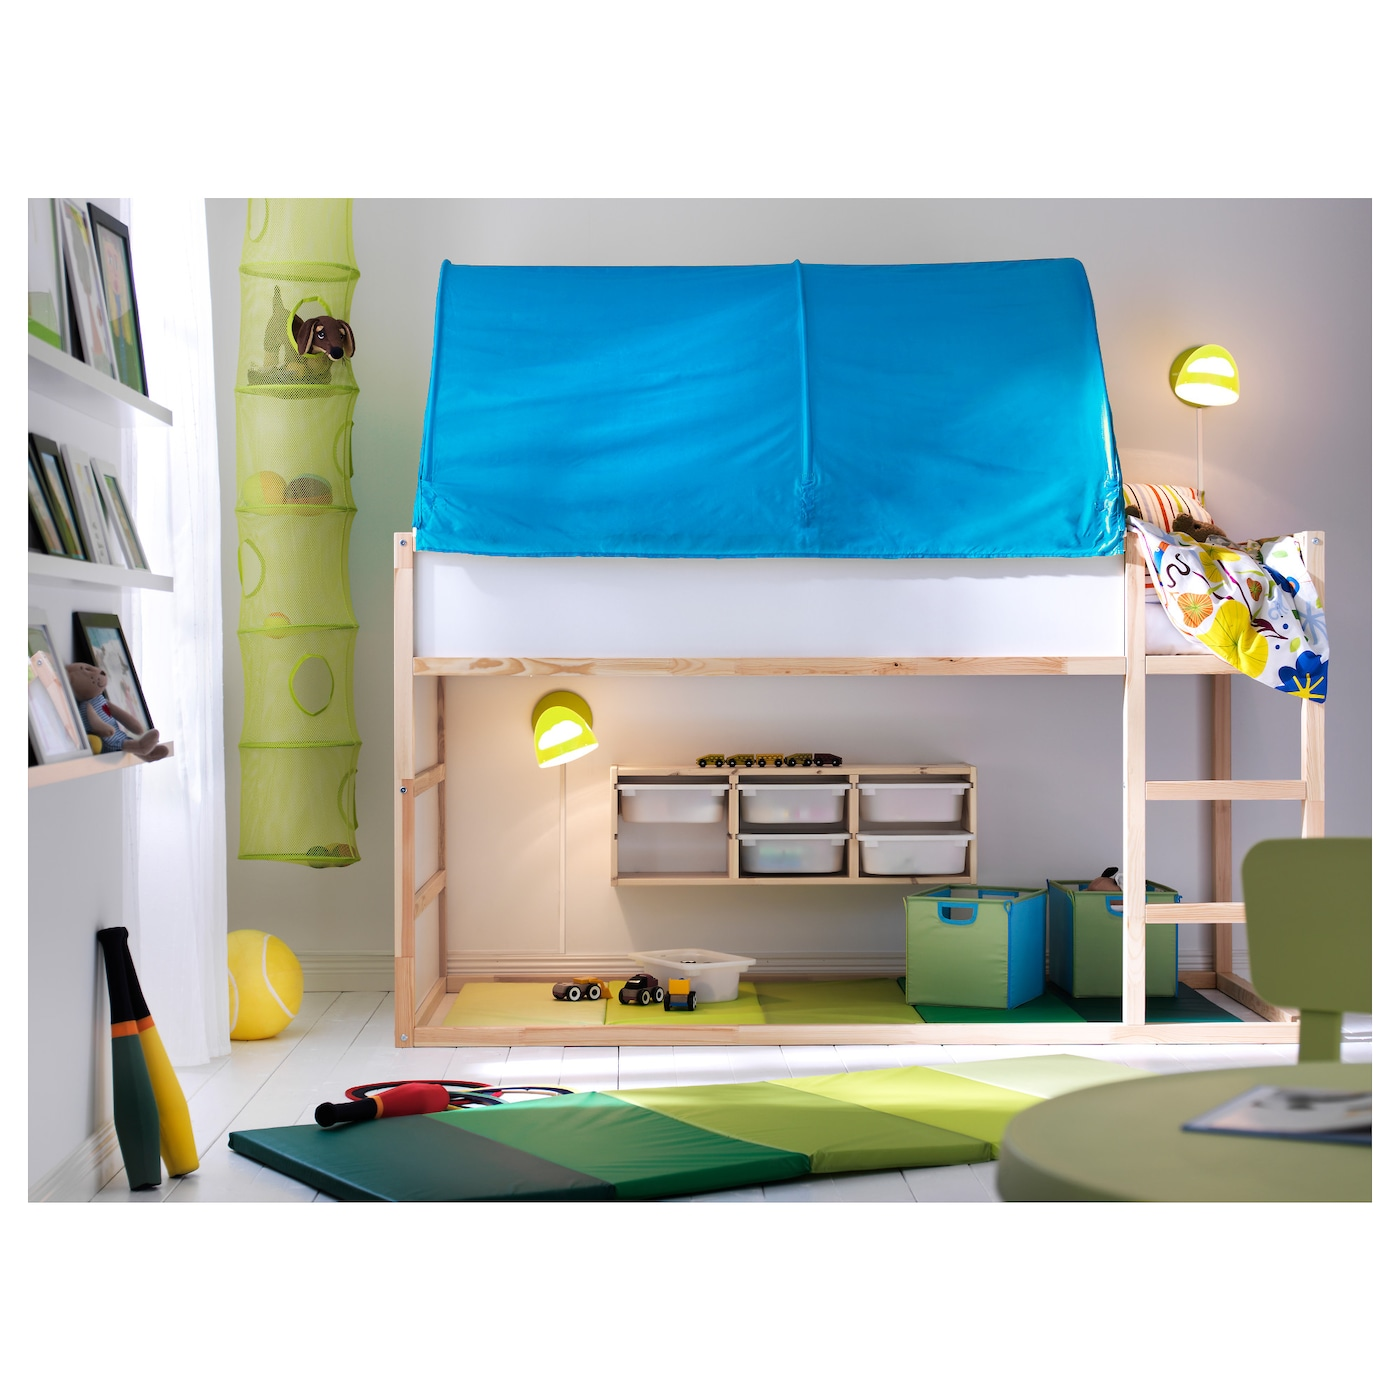 IKEA KURA bed tent Fits the bed both in a low and a high position.